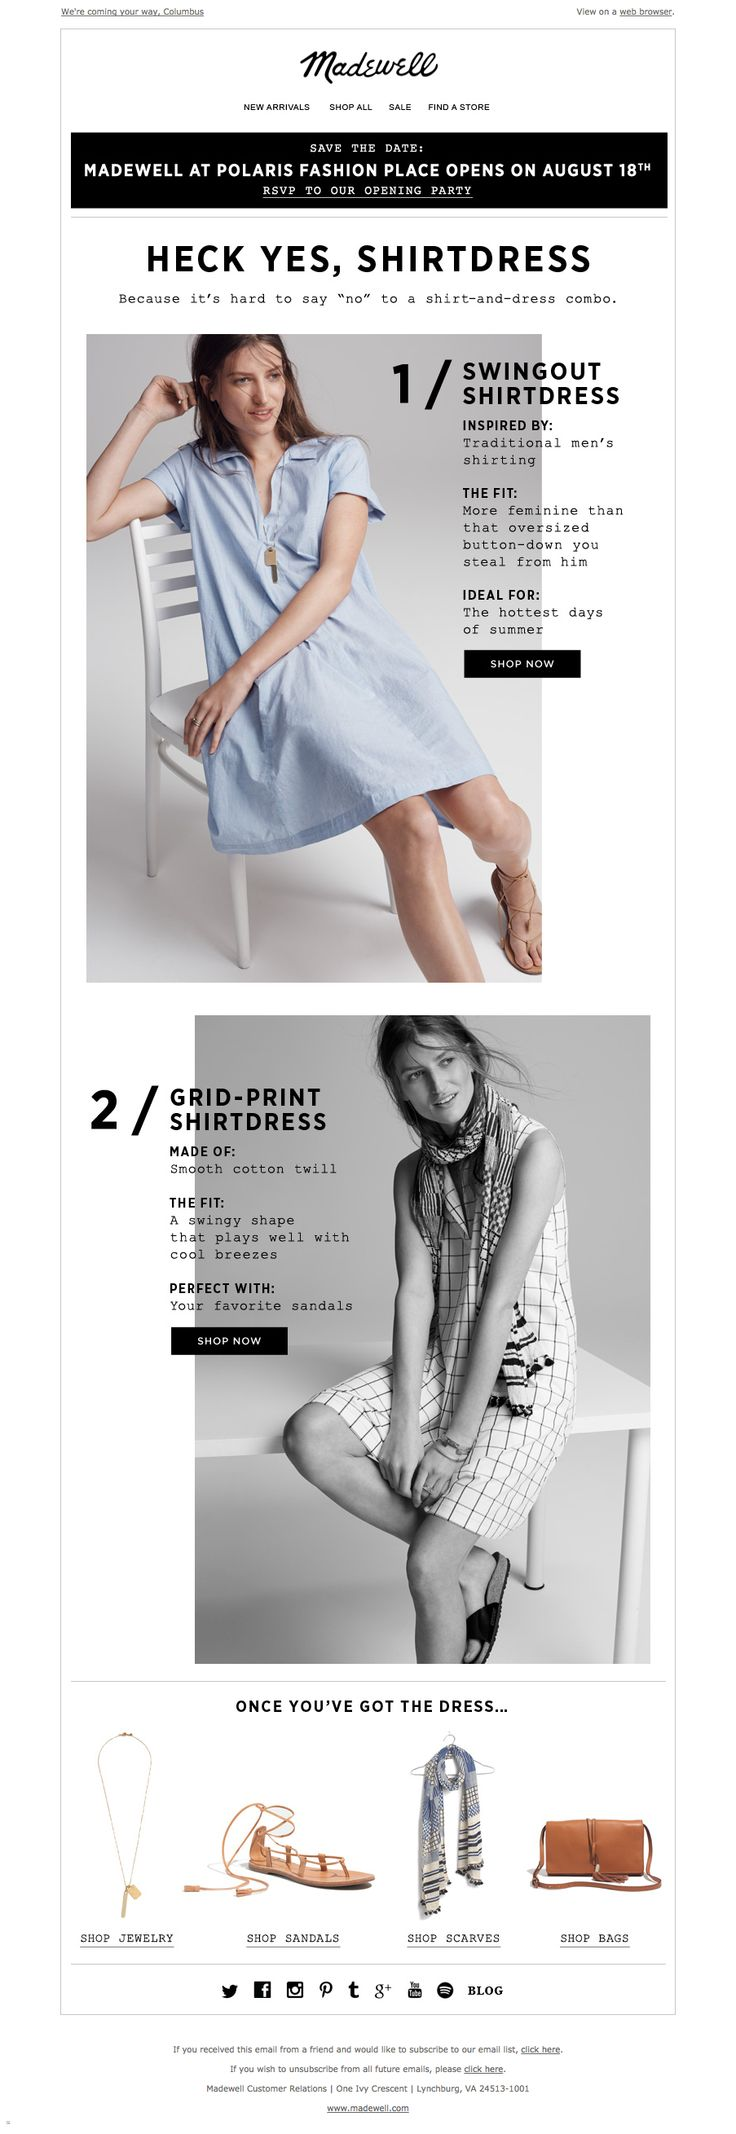 The shirtdress email / JCREW